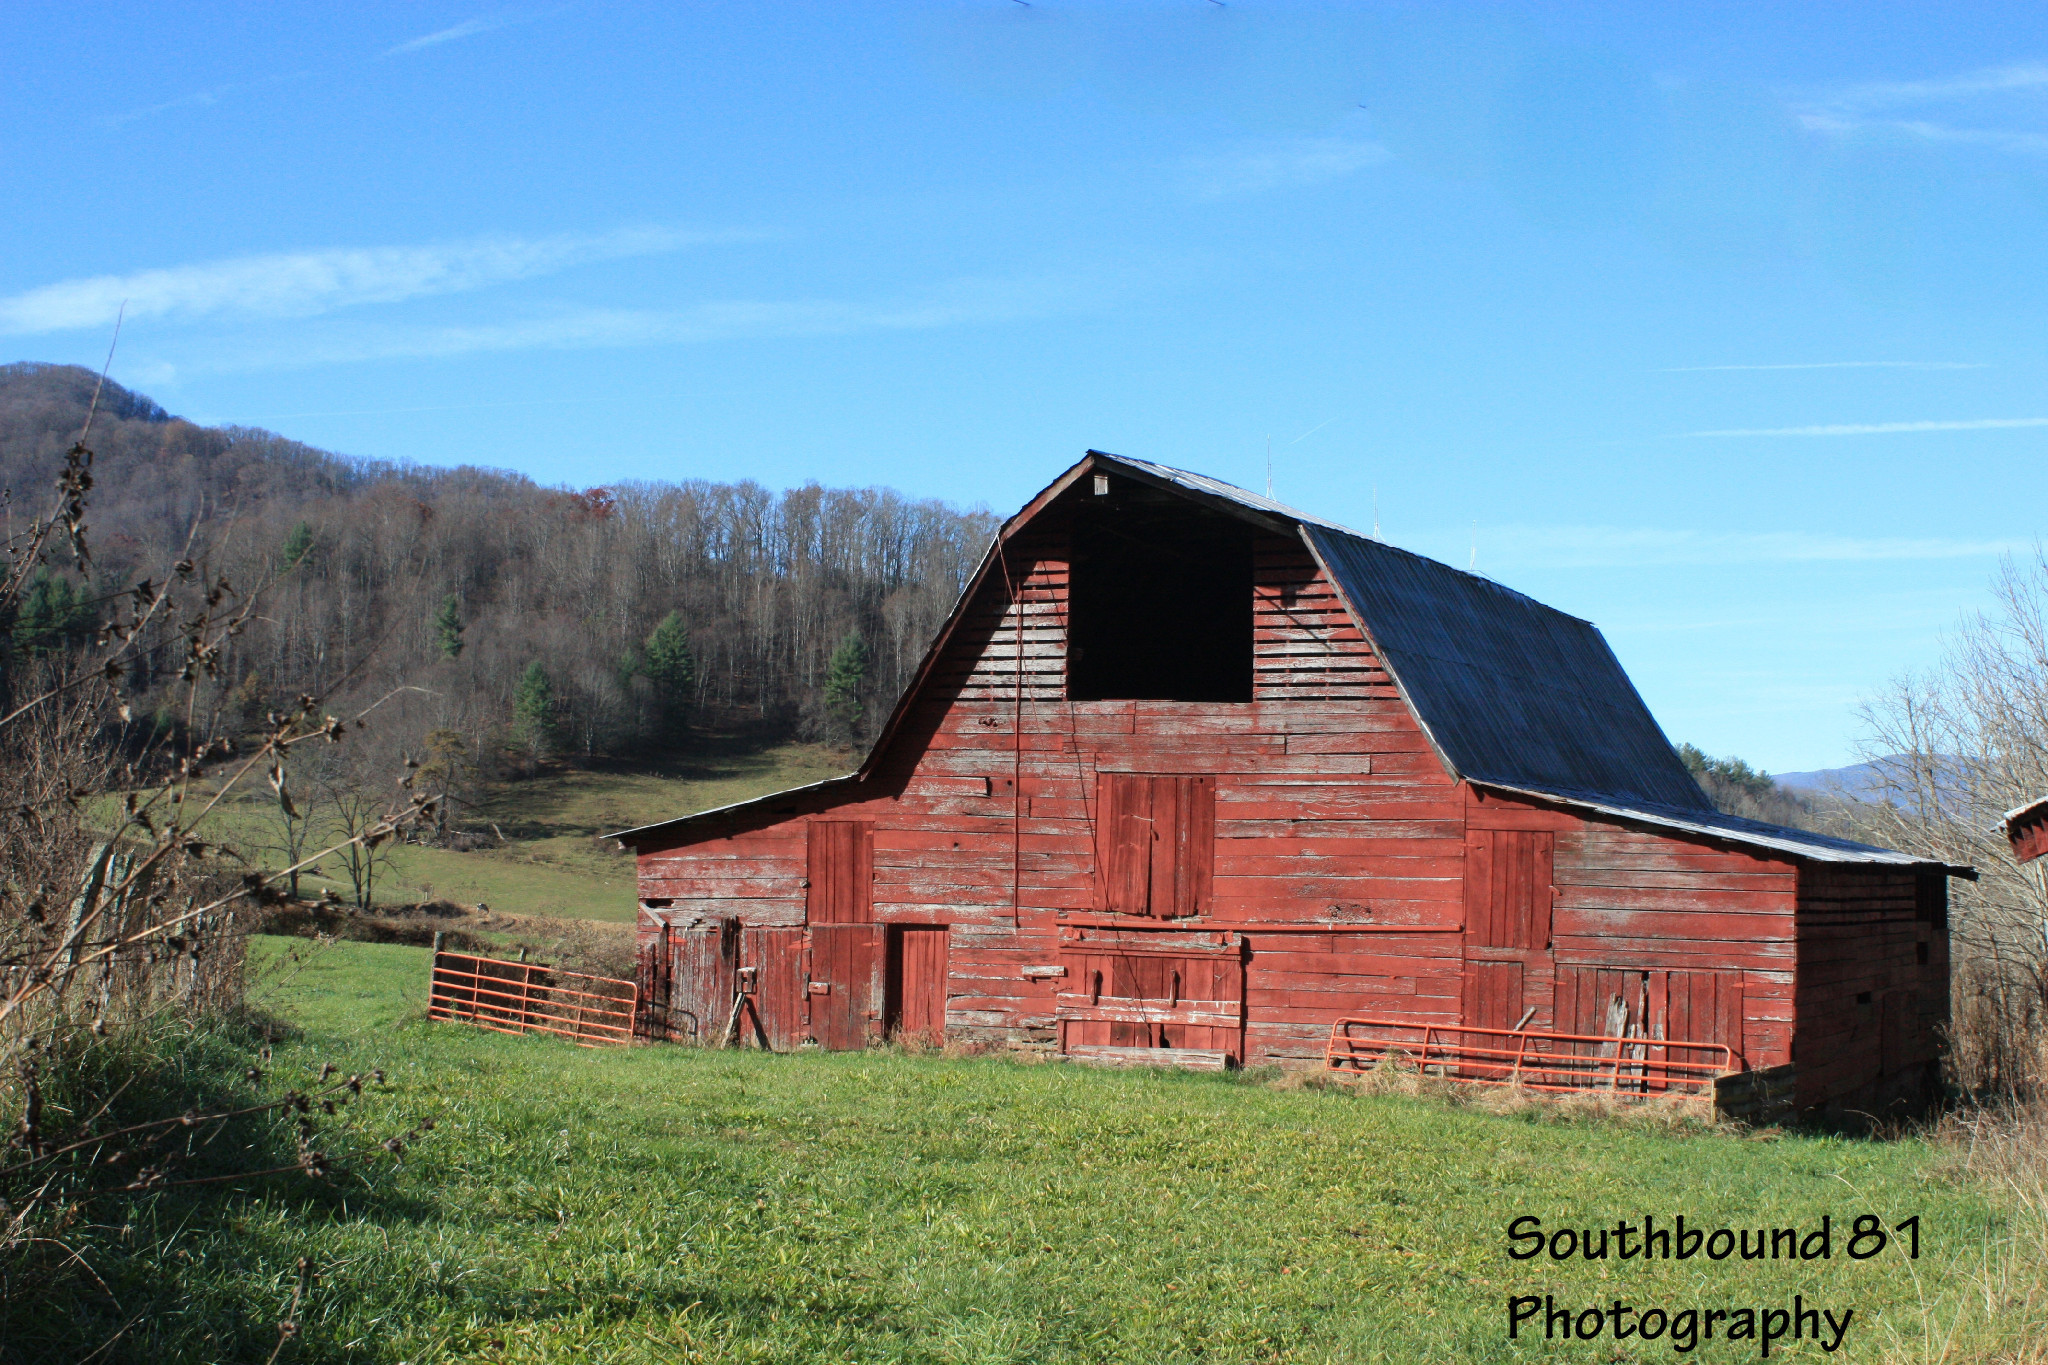 1920x1080 Wallpaper Building Barn Old Wooden Wood